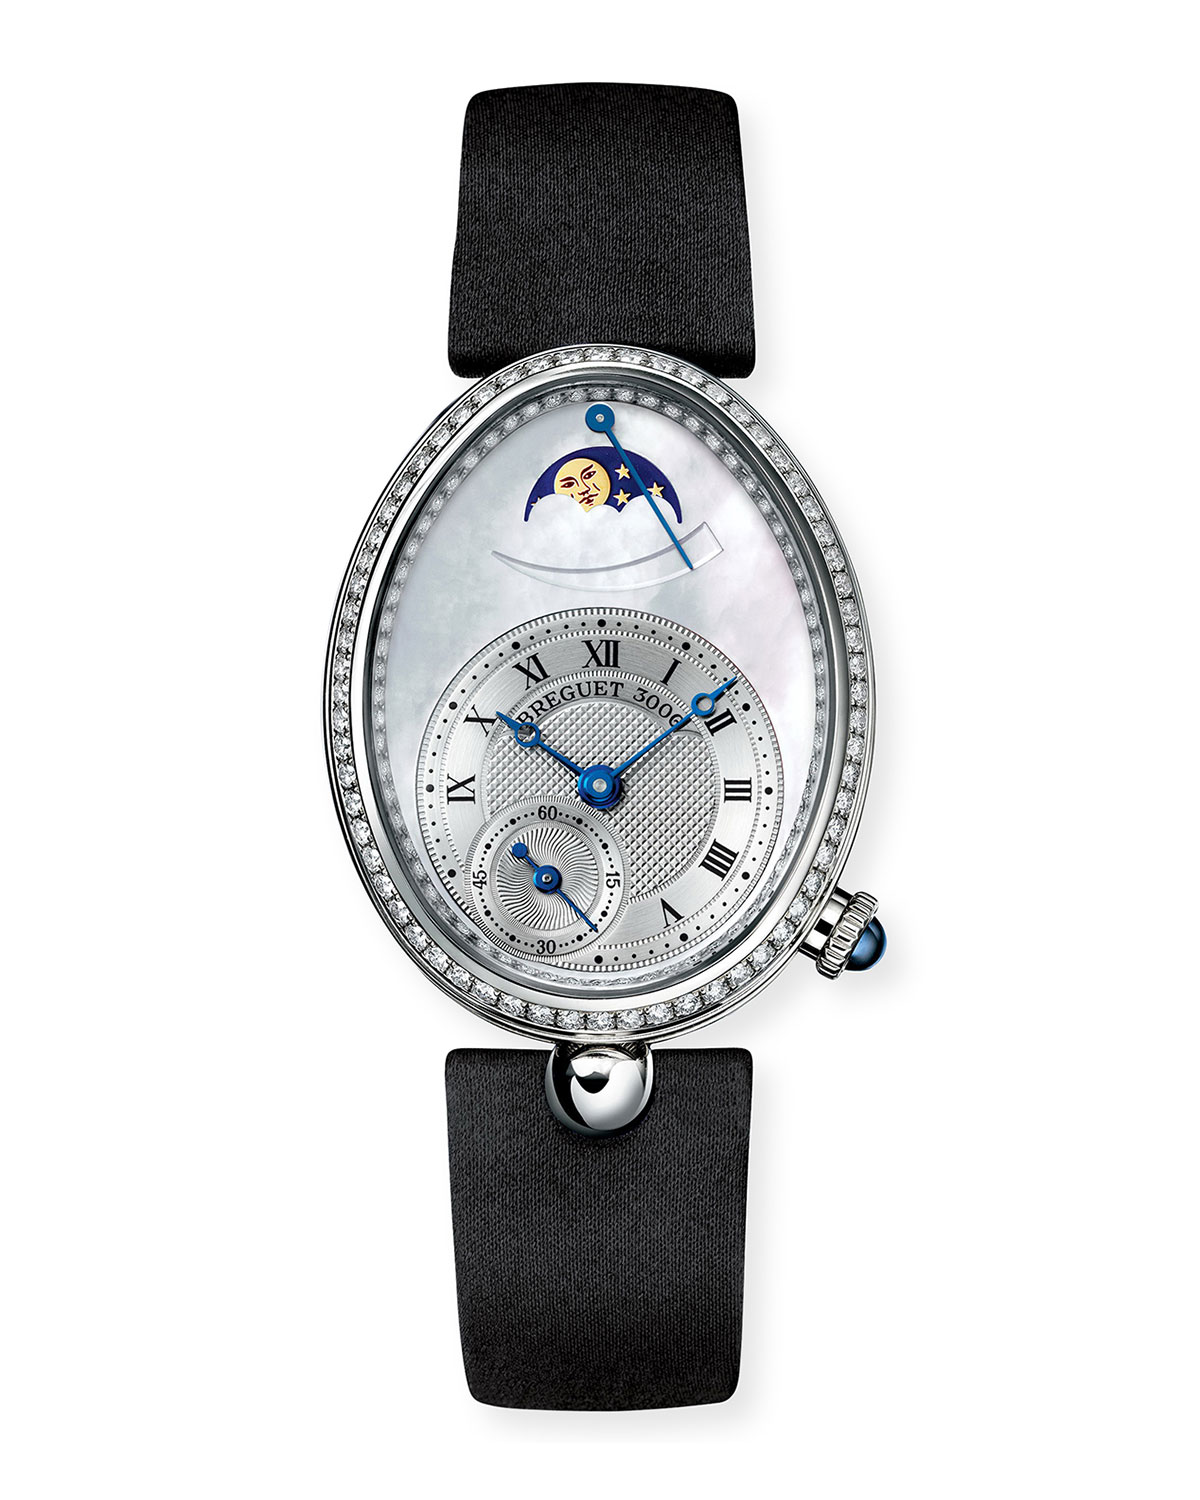 Breguet 18k White Gold Moon Phase Diamond Watch w/ Leather Strap